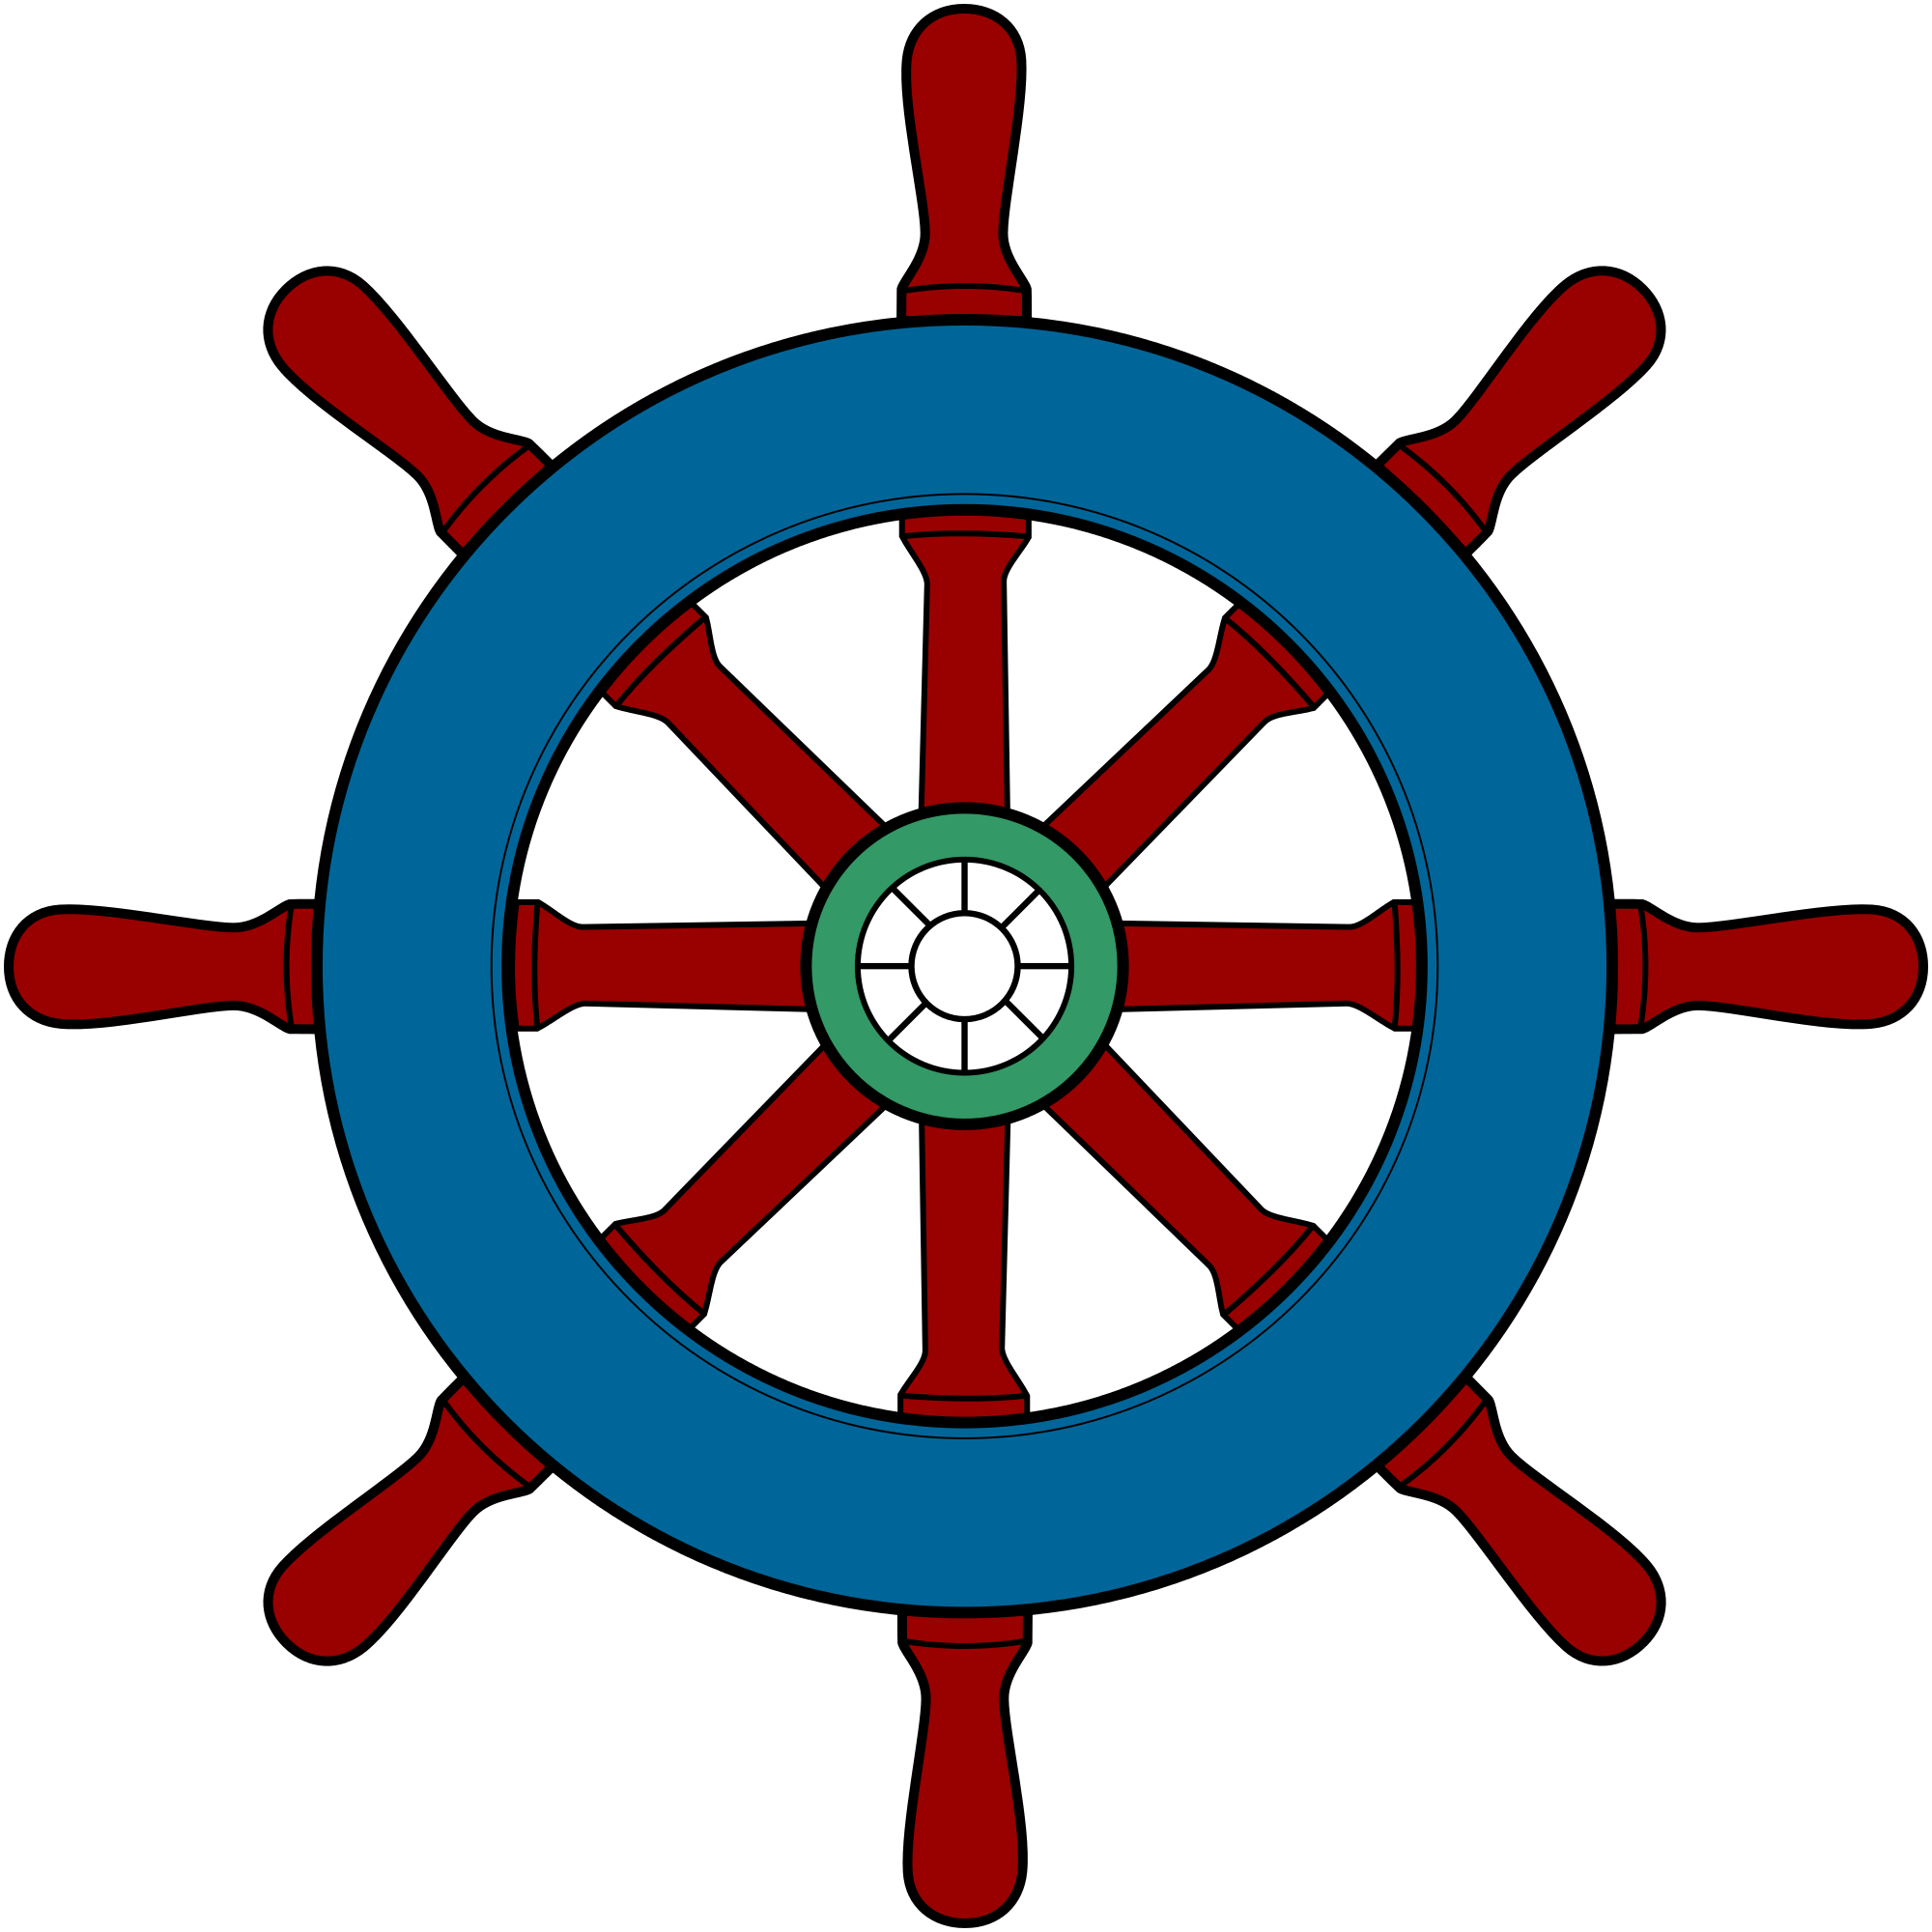 Clipart anchor wheel. Ships group filewikivoyagesteering shipsvg